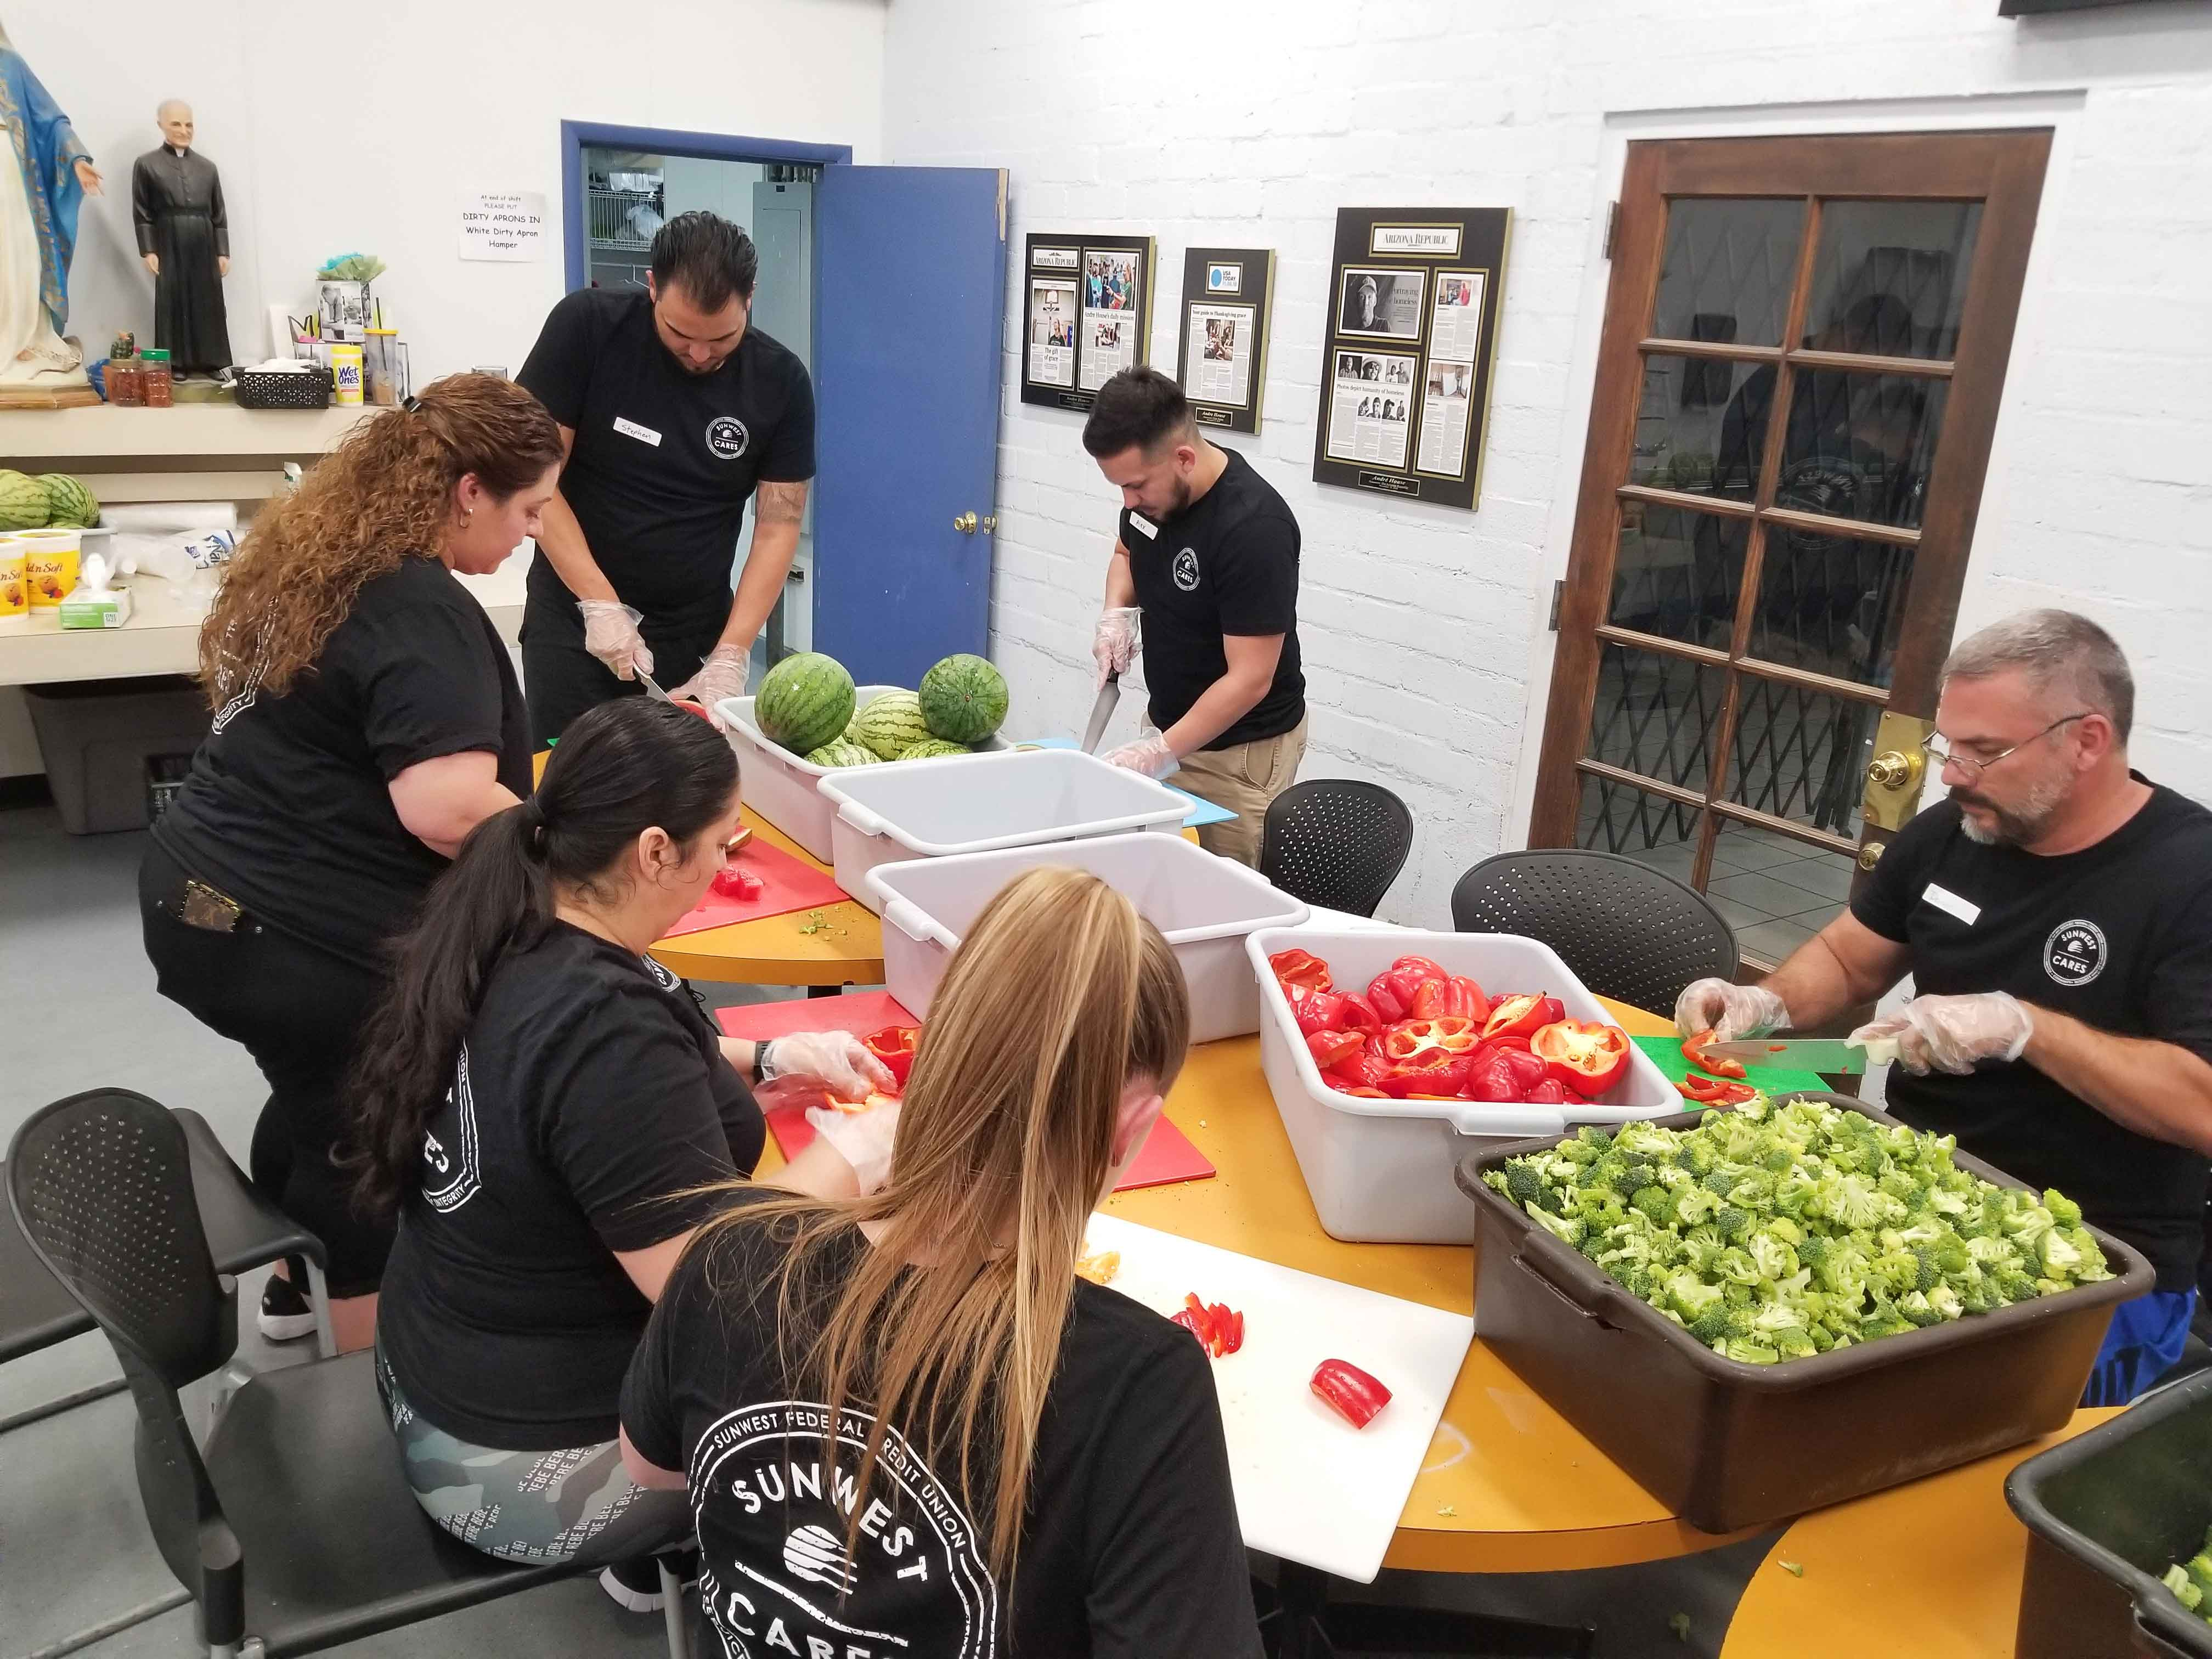 six SunWest employees volunteering with SunWest Cares cut fruit to prepare lunch at Andre House in Phoenix